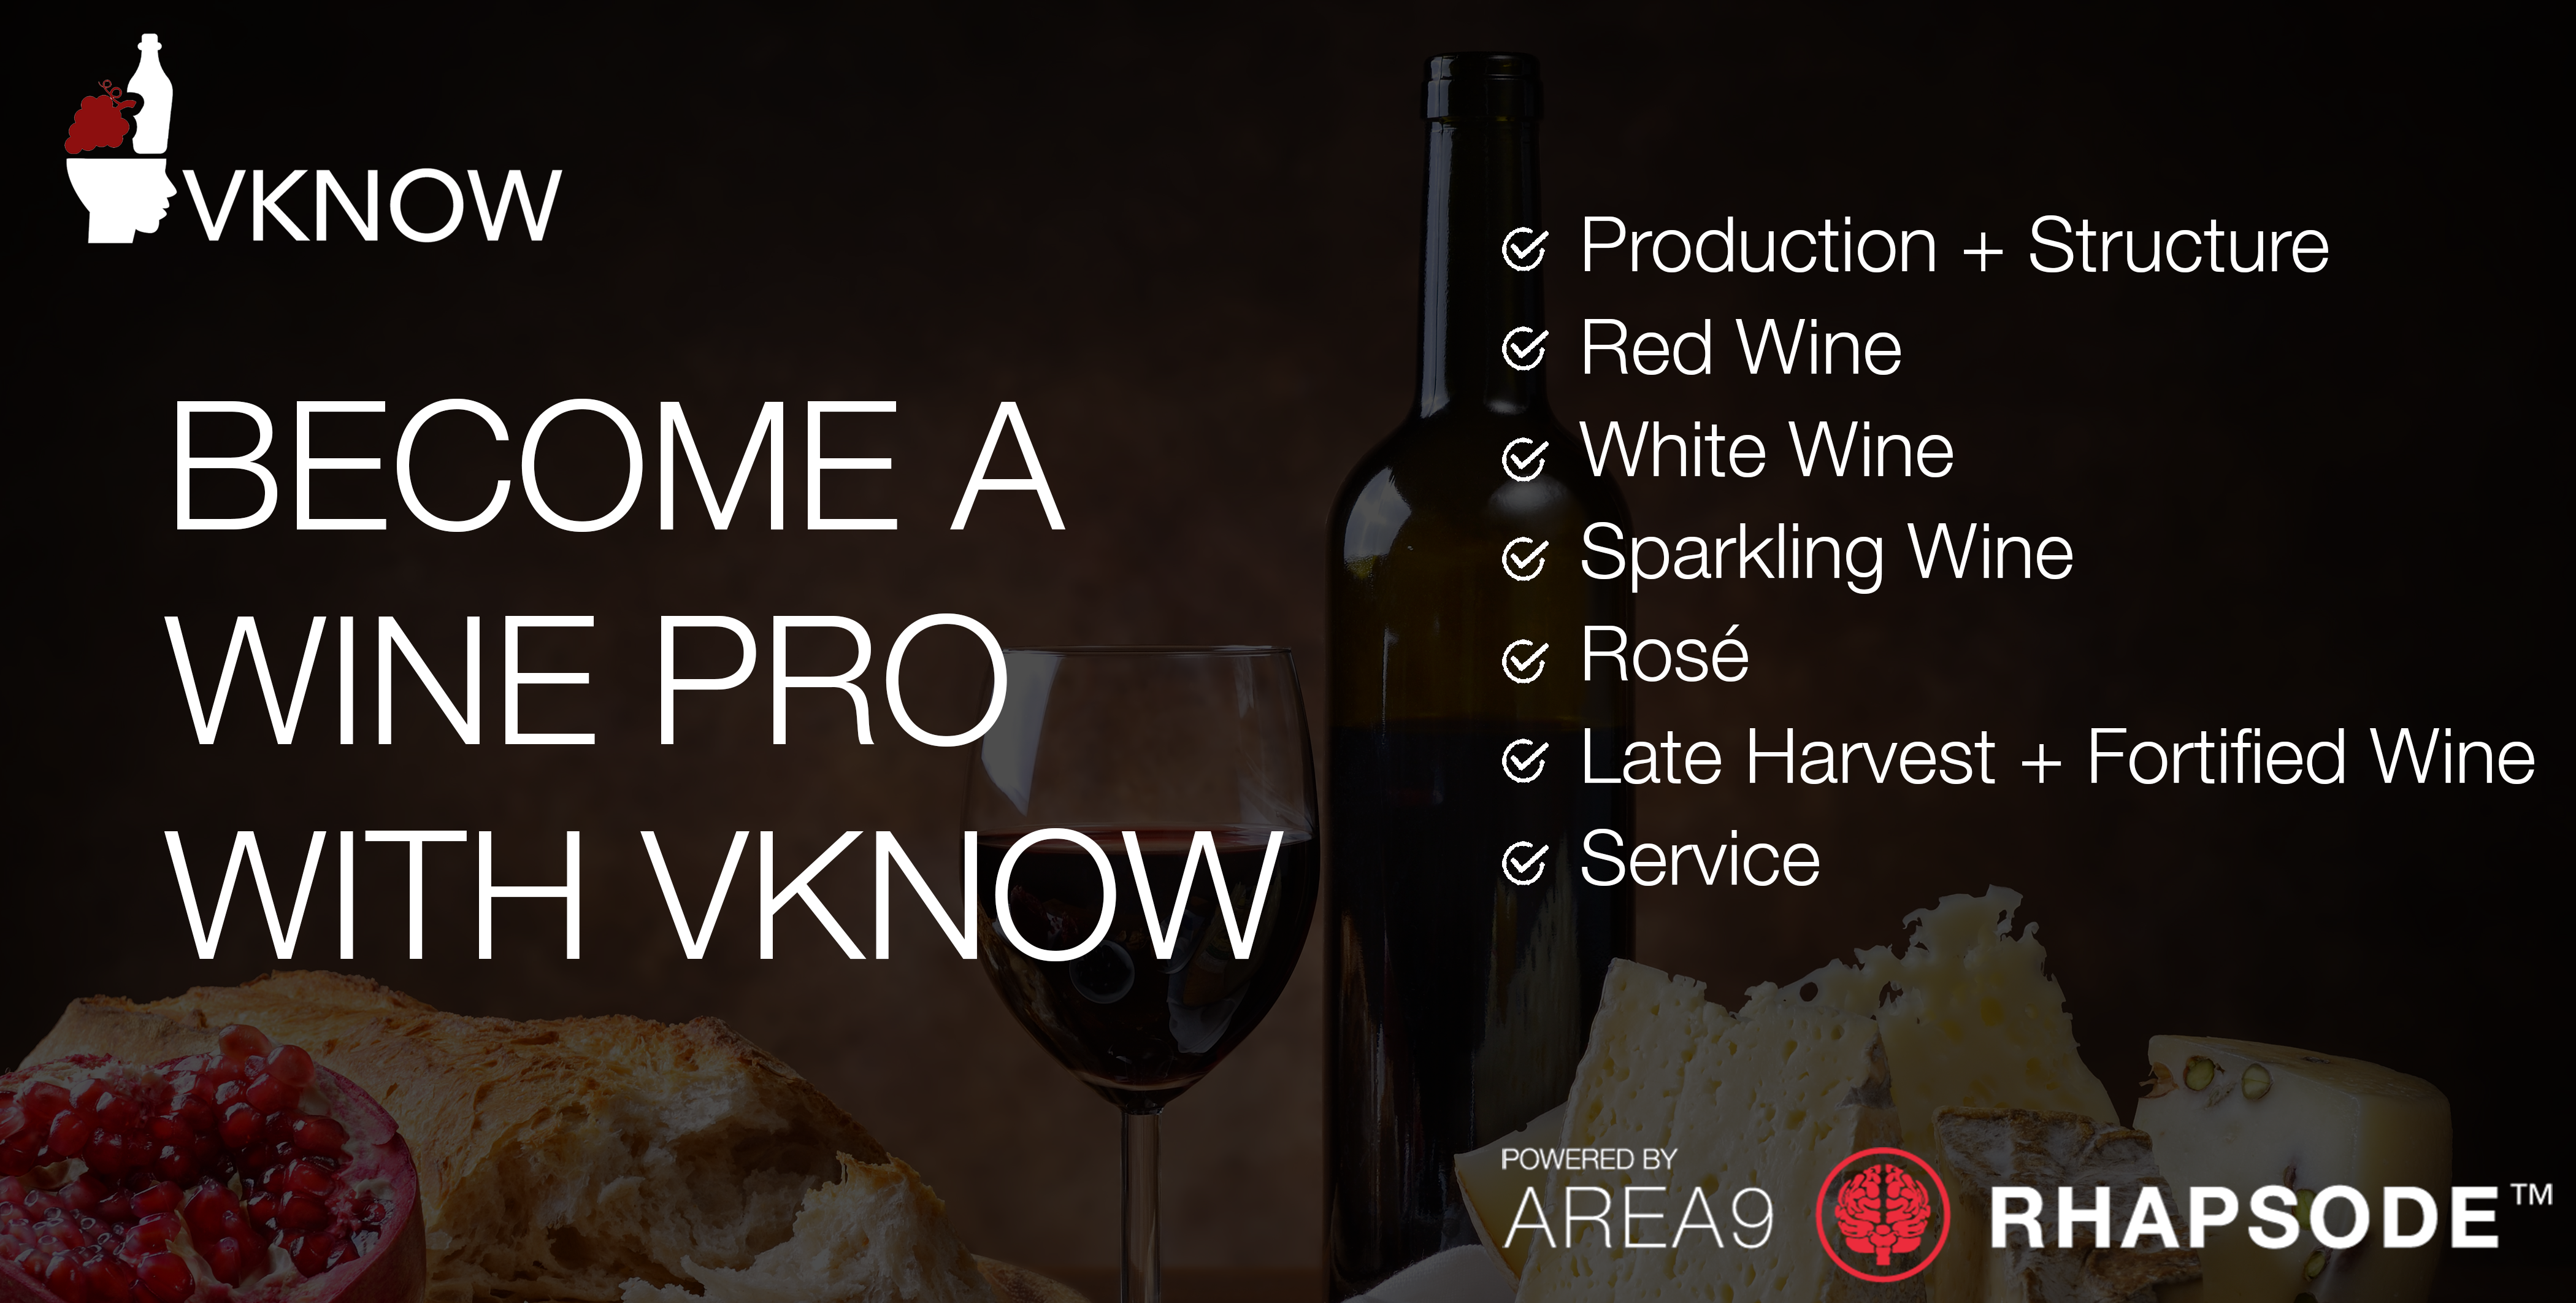 Area9 Lyceum + VKNOW: Become a Wine Pro and Experience Adaptive Learning